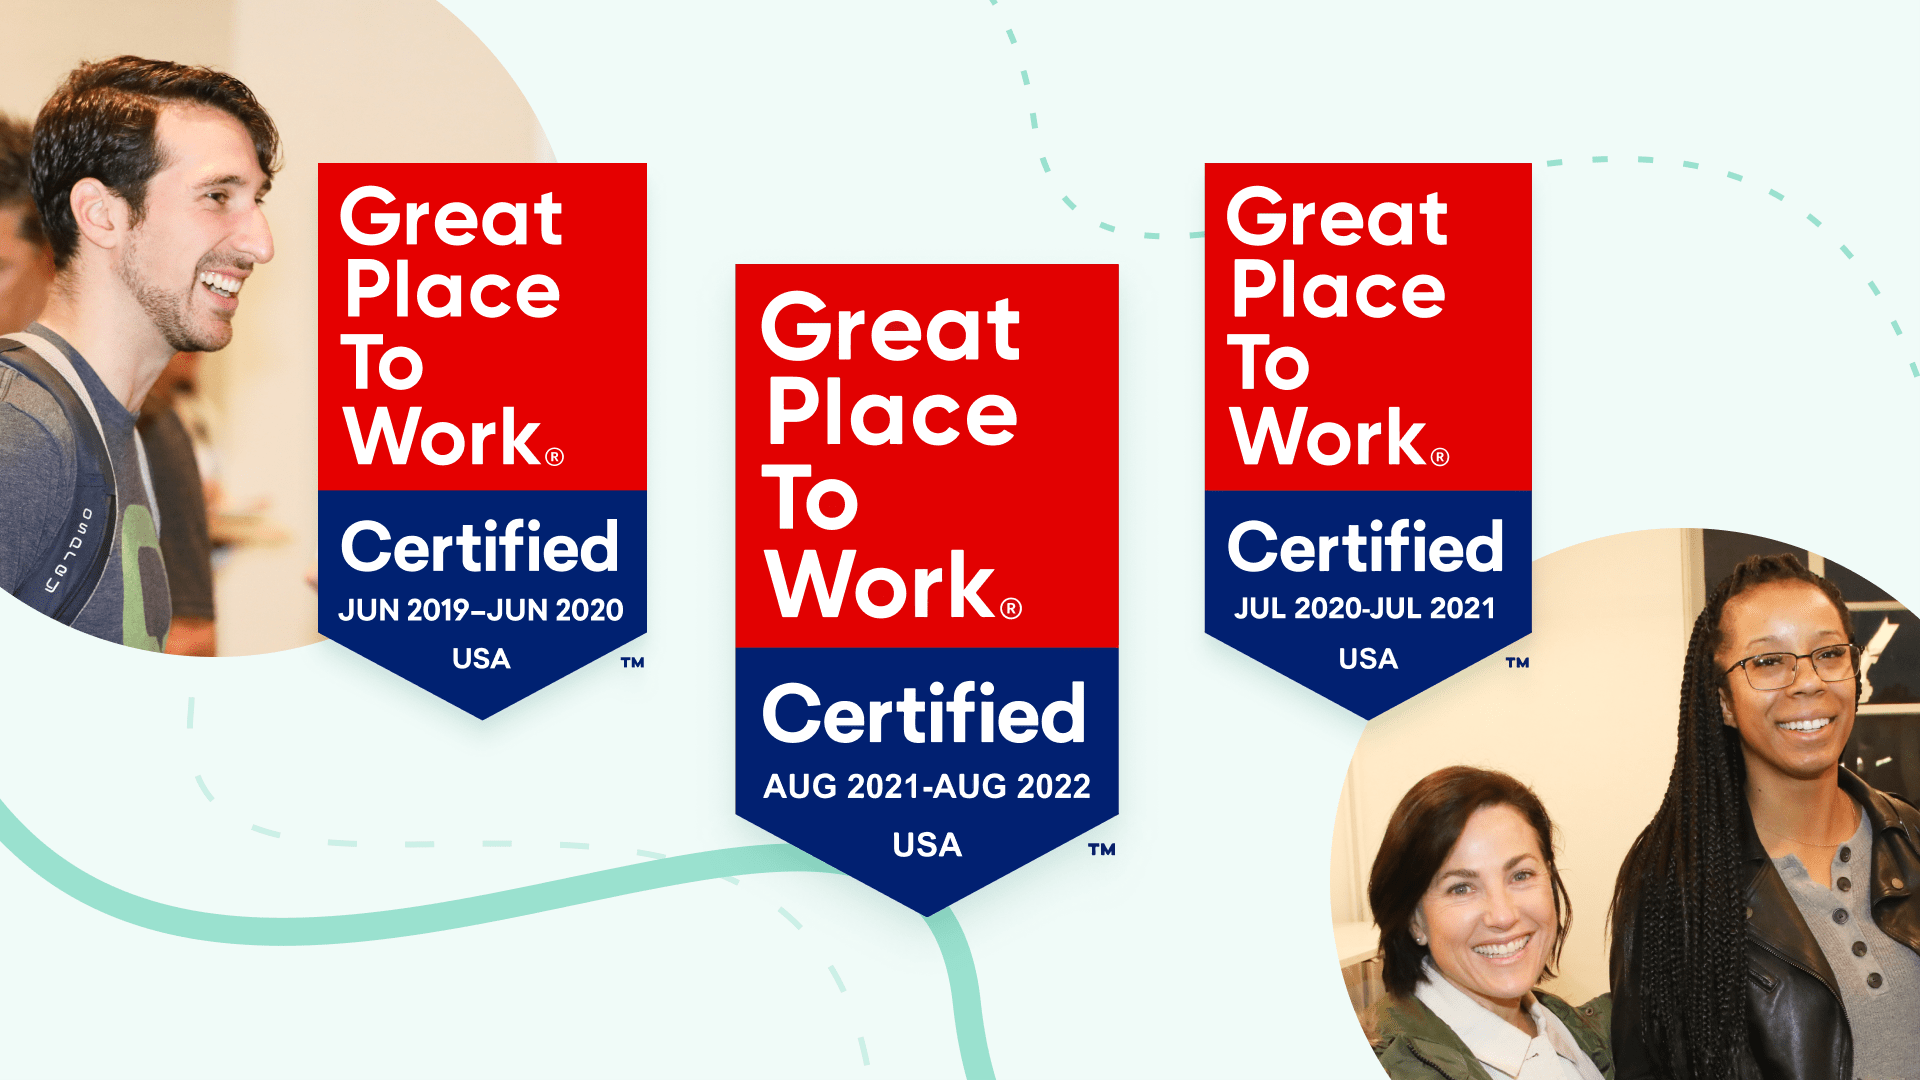 Invoca Achieves Great Place to Work Certification 3 Years in a Row